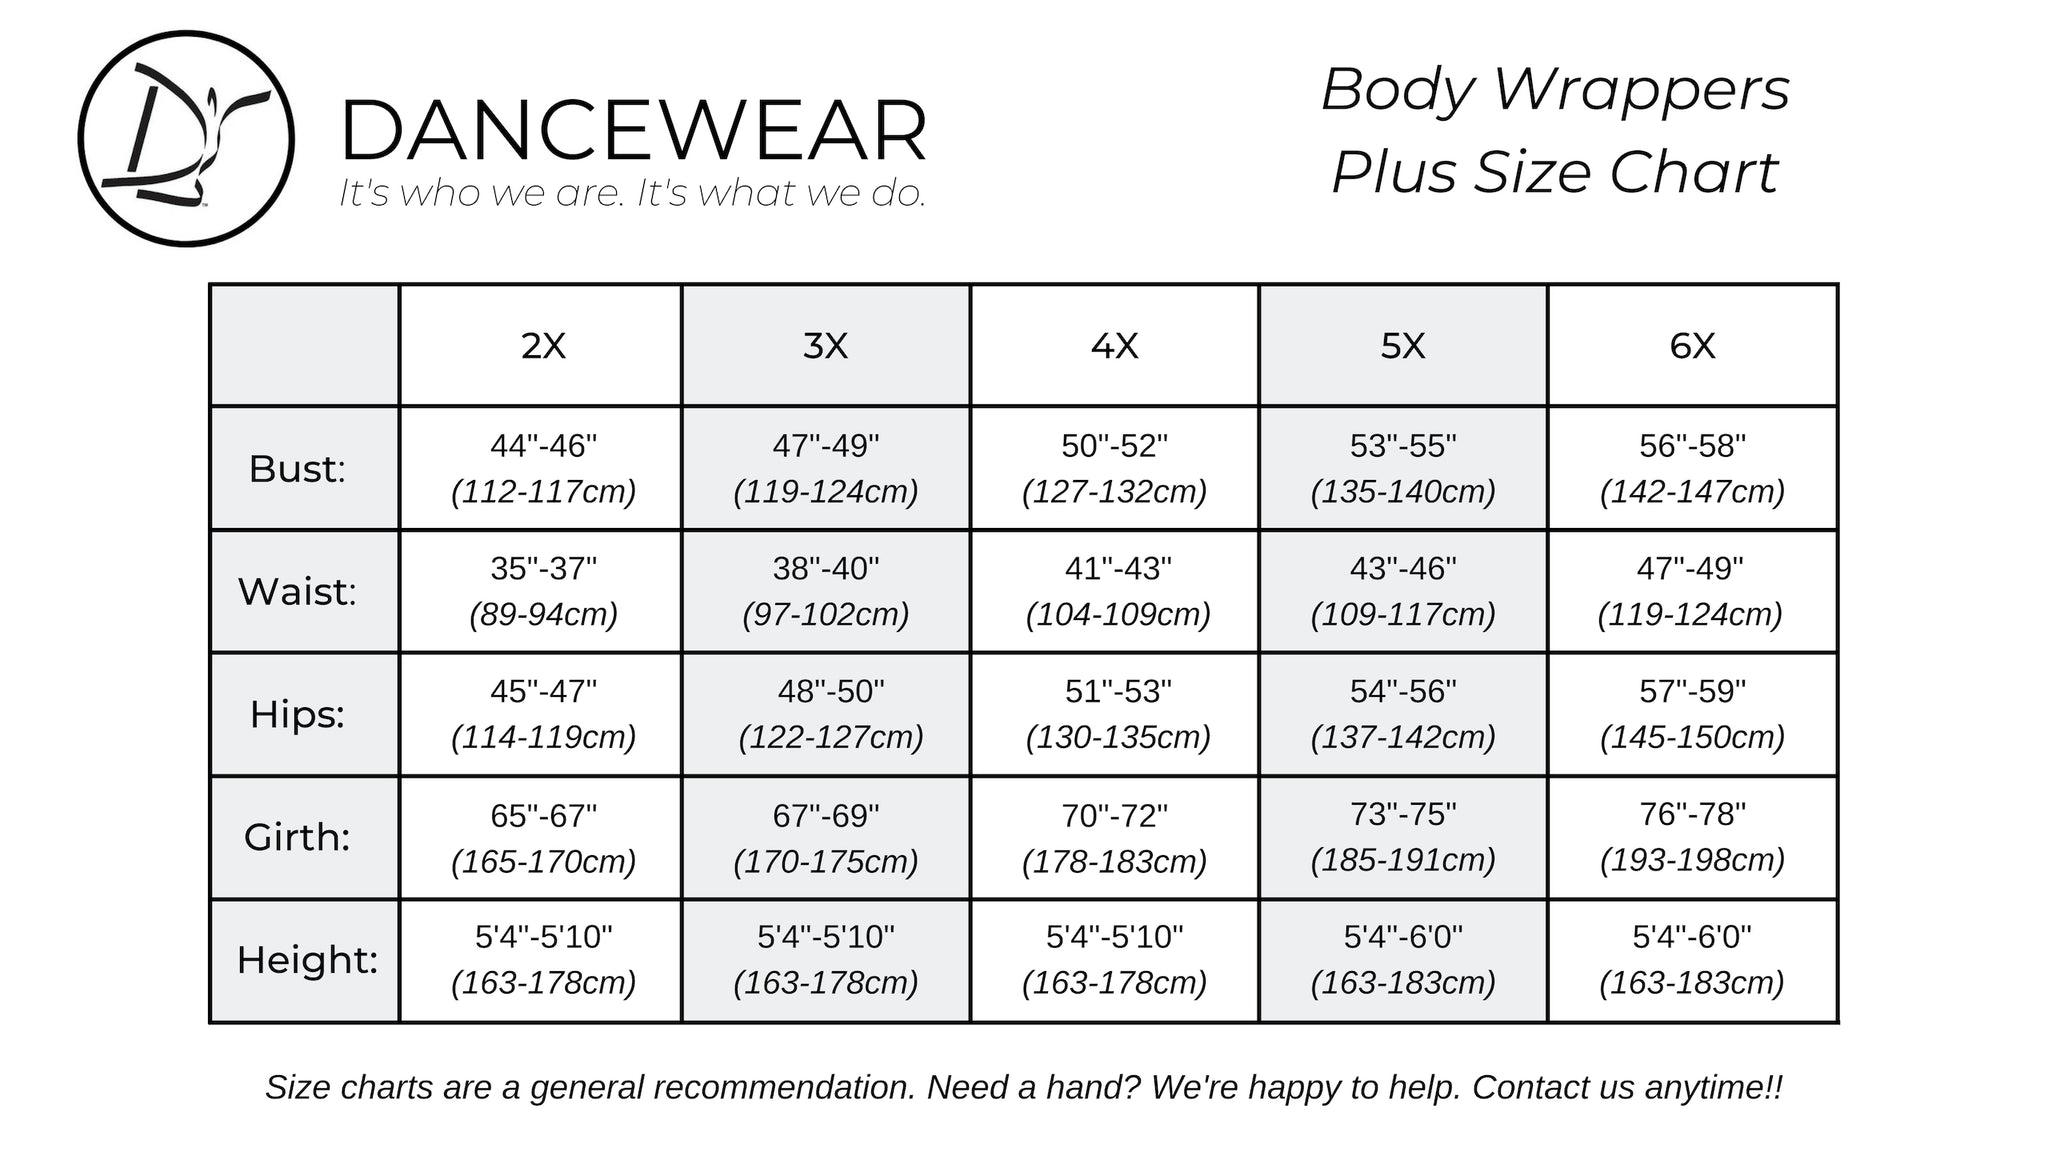 Body Wrappers Plus Size Chart